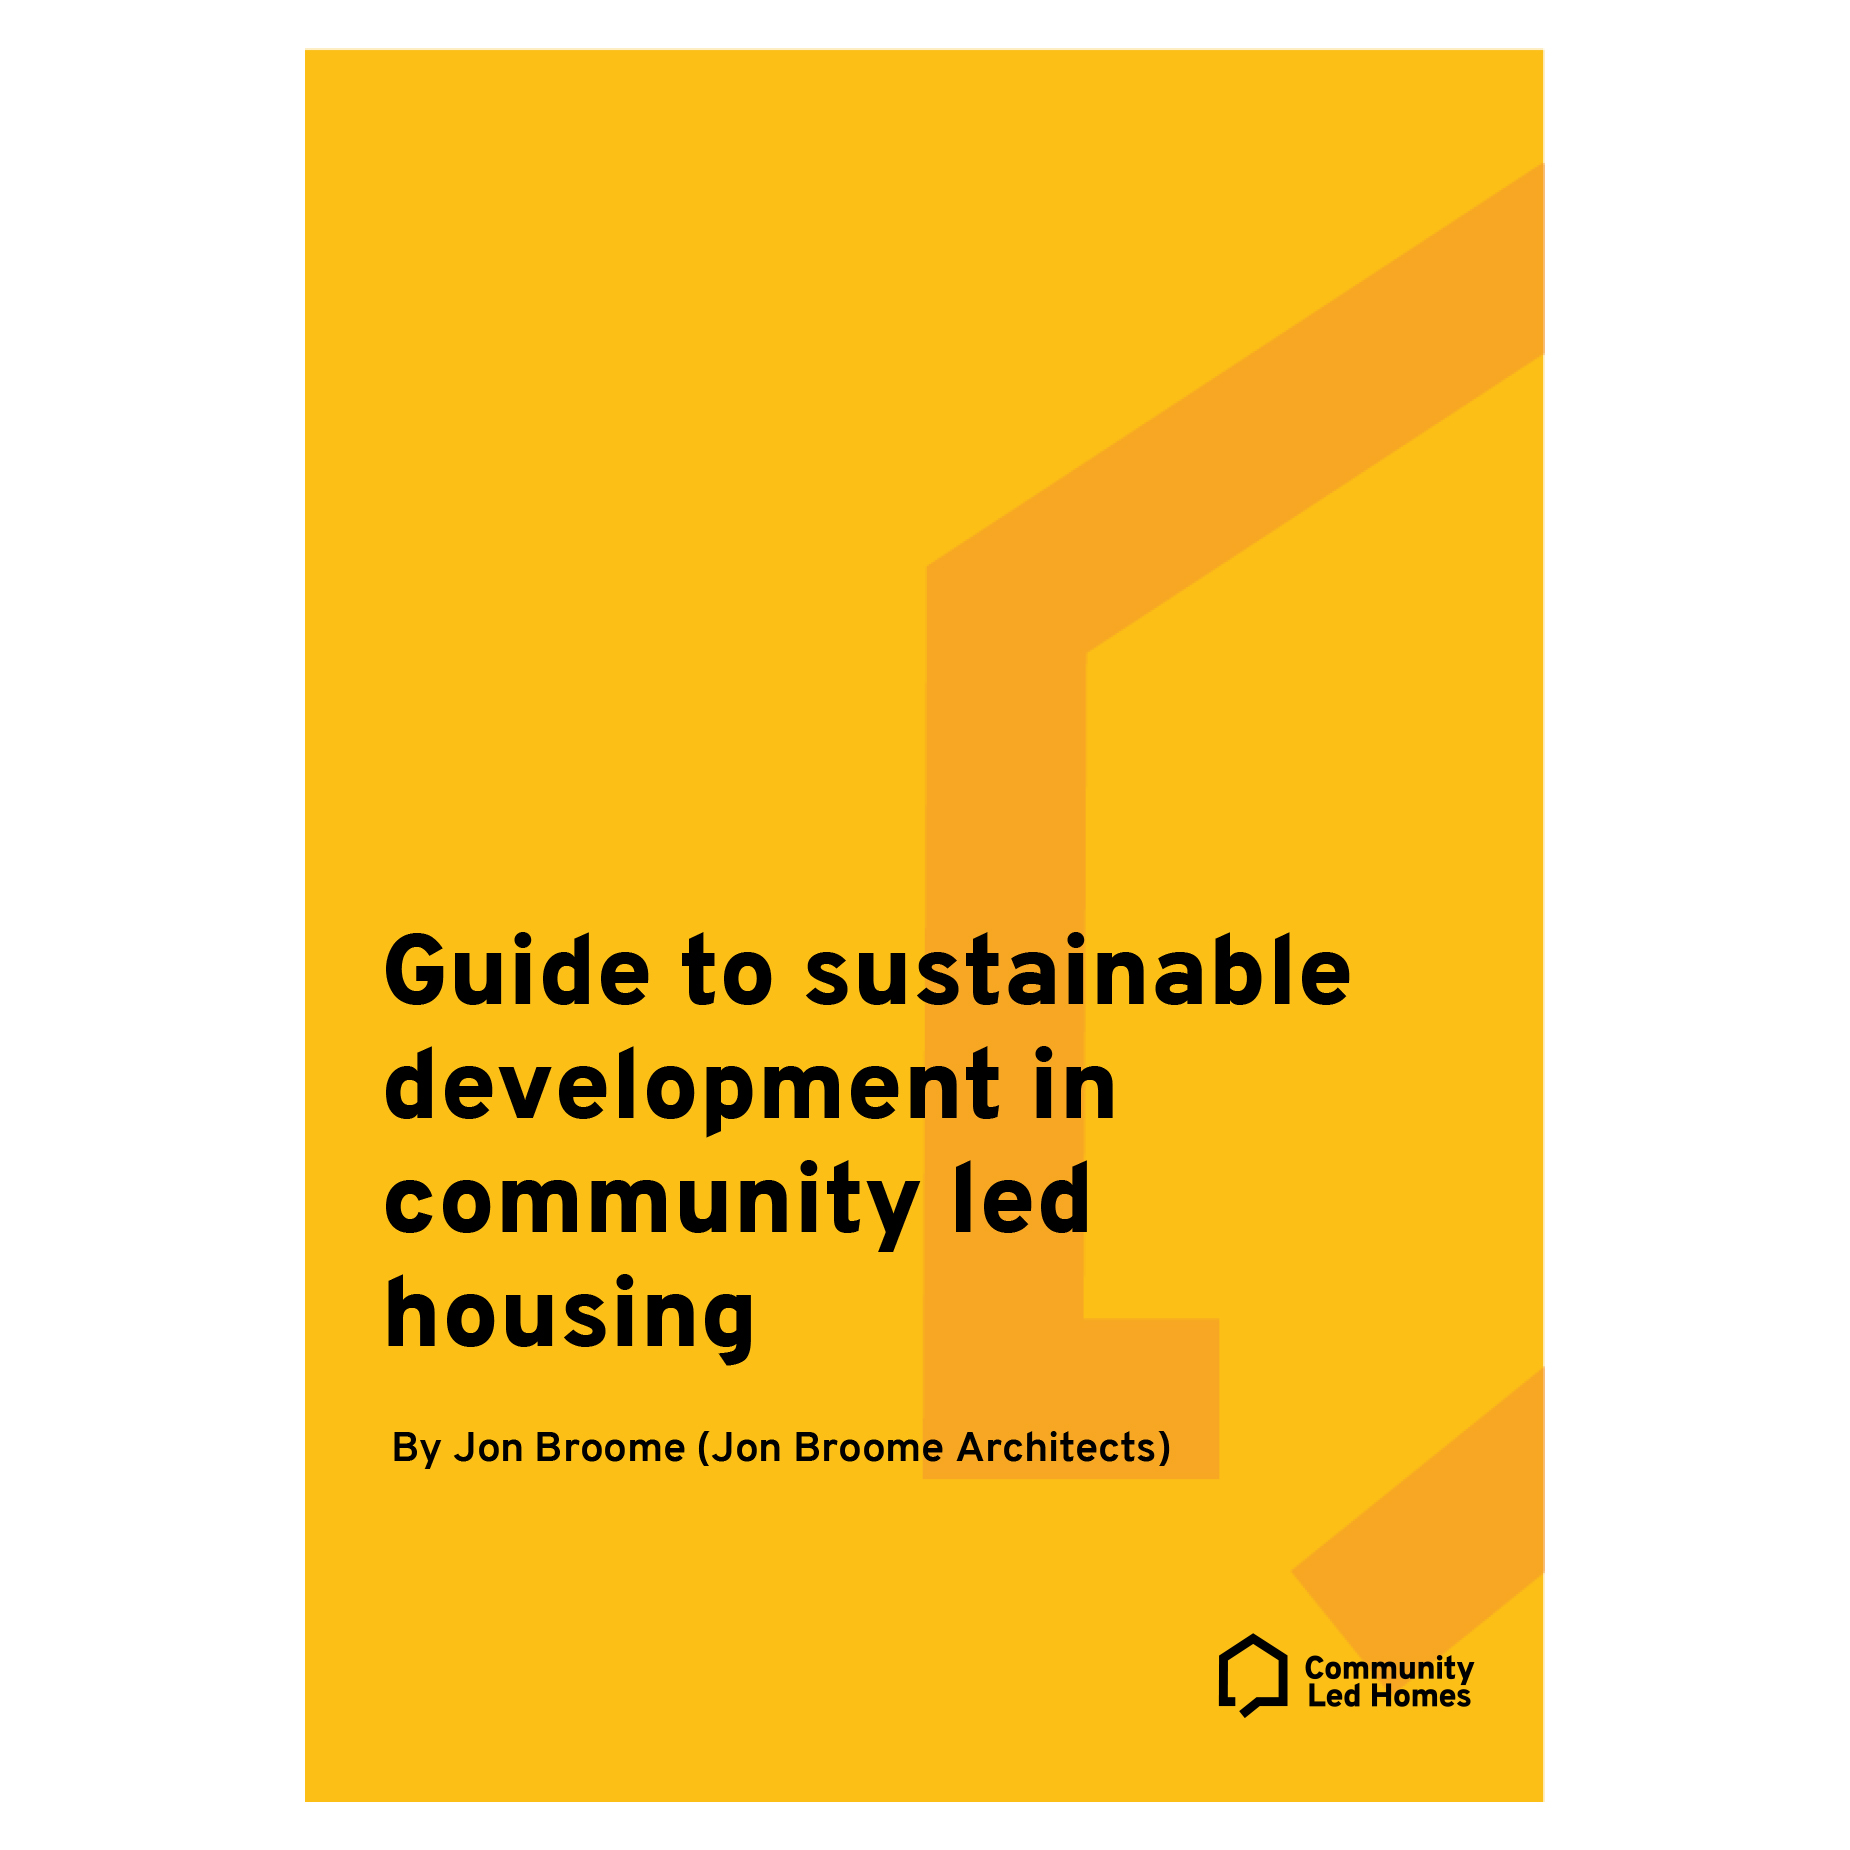 Guide to sustainable development in community led housing